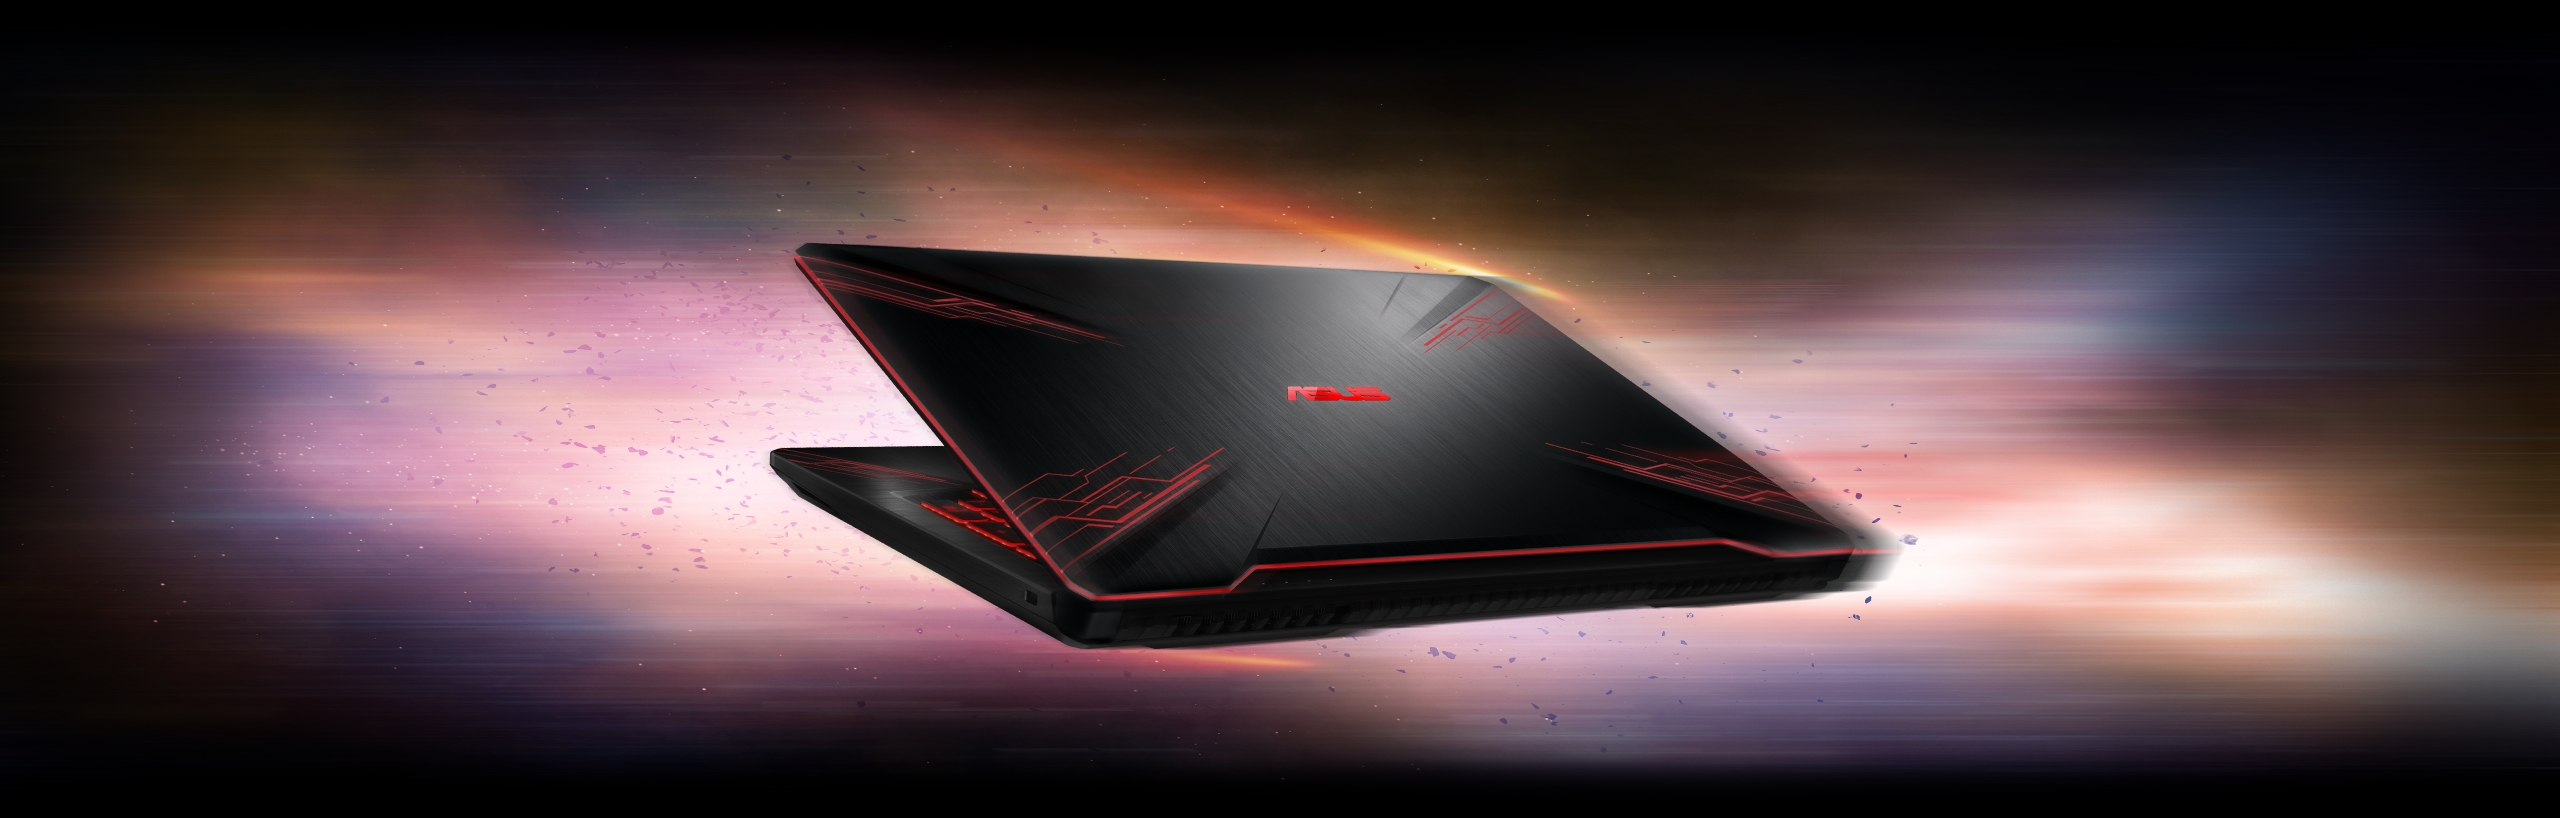 PC Portable ASUS Gaming TUF504GE